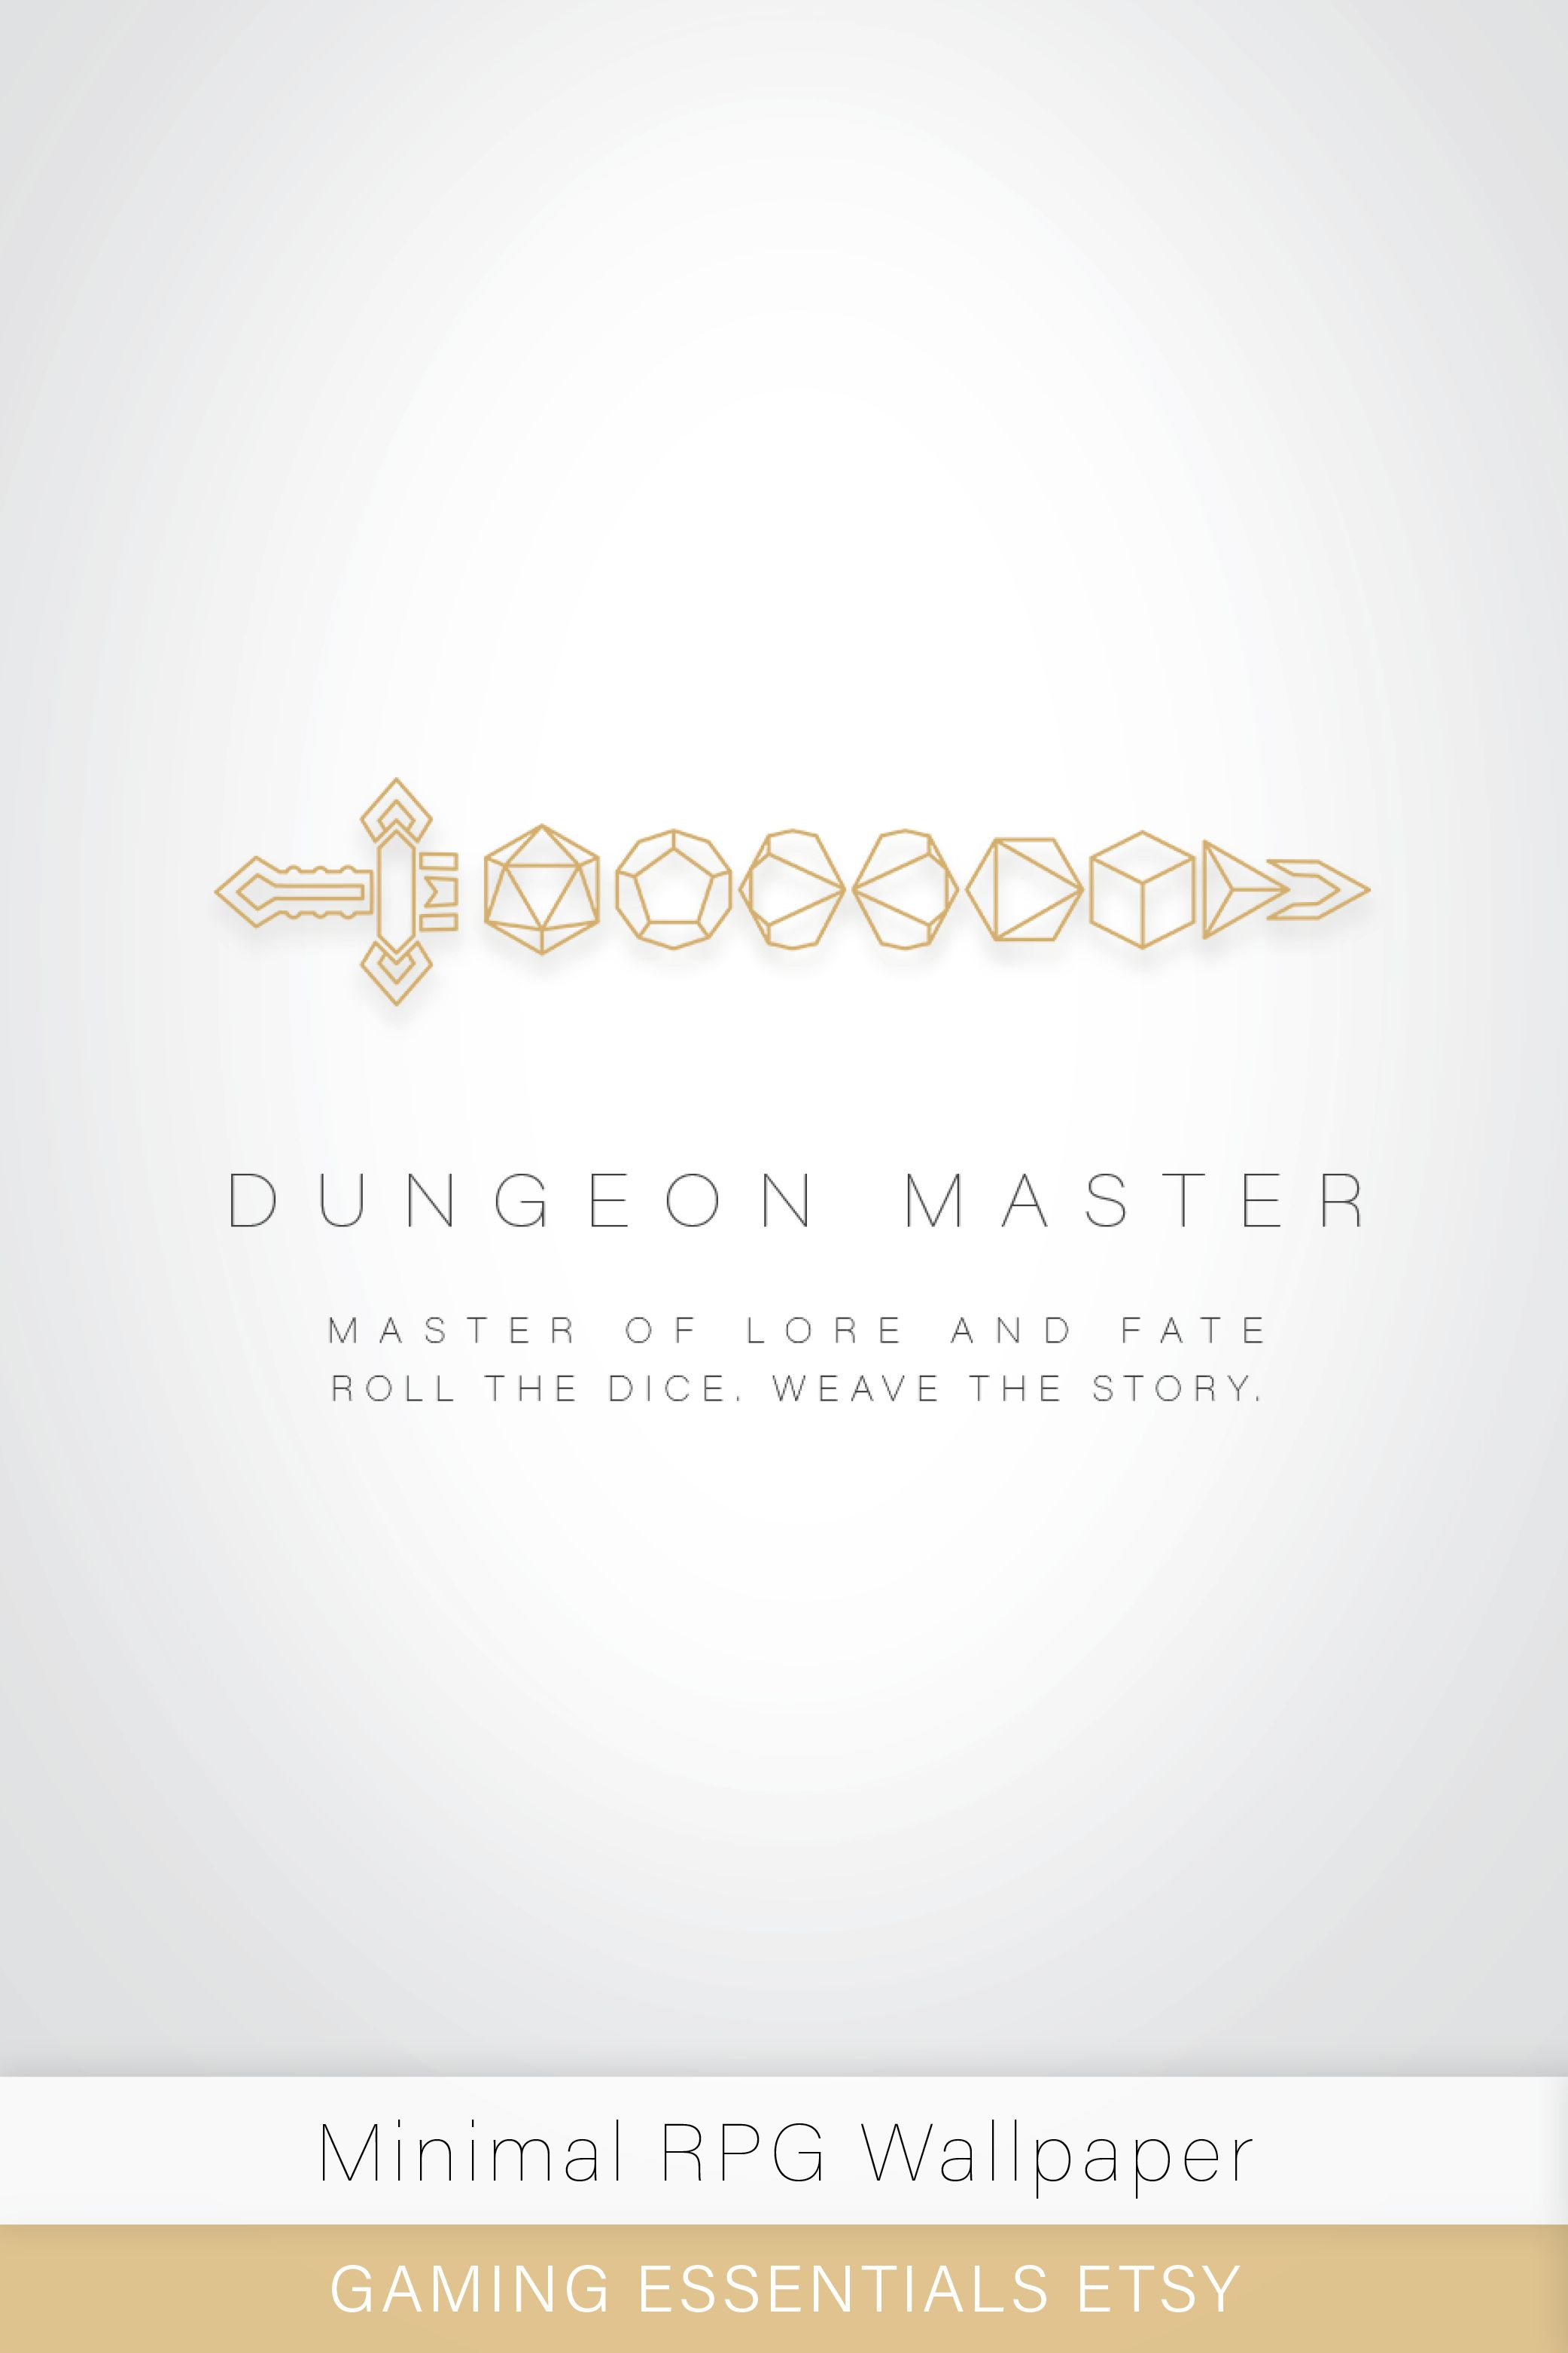 Dungeon Master Tabletop Rpg D D Wallpaper Background For Desktop Tablet Ipad Iphone Minimalist Artwork Dungeons And Dragons Minimalist Iphone Ipad Wallpaper Computer Wallpaper Desktop Wallpapers